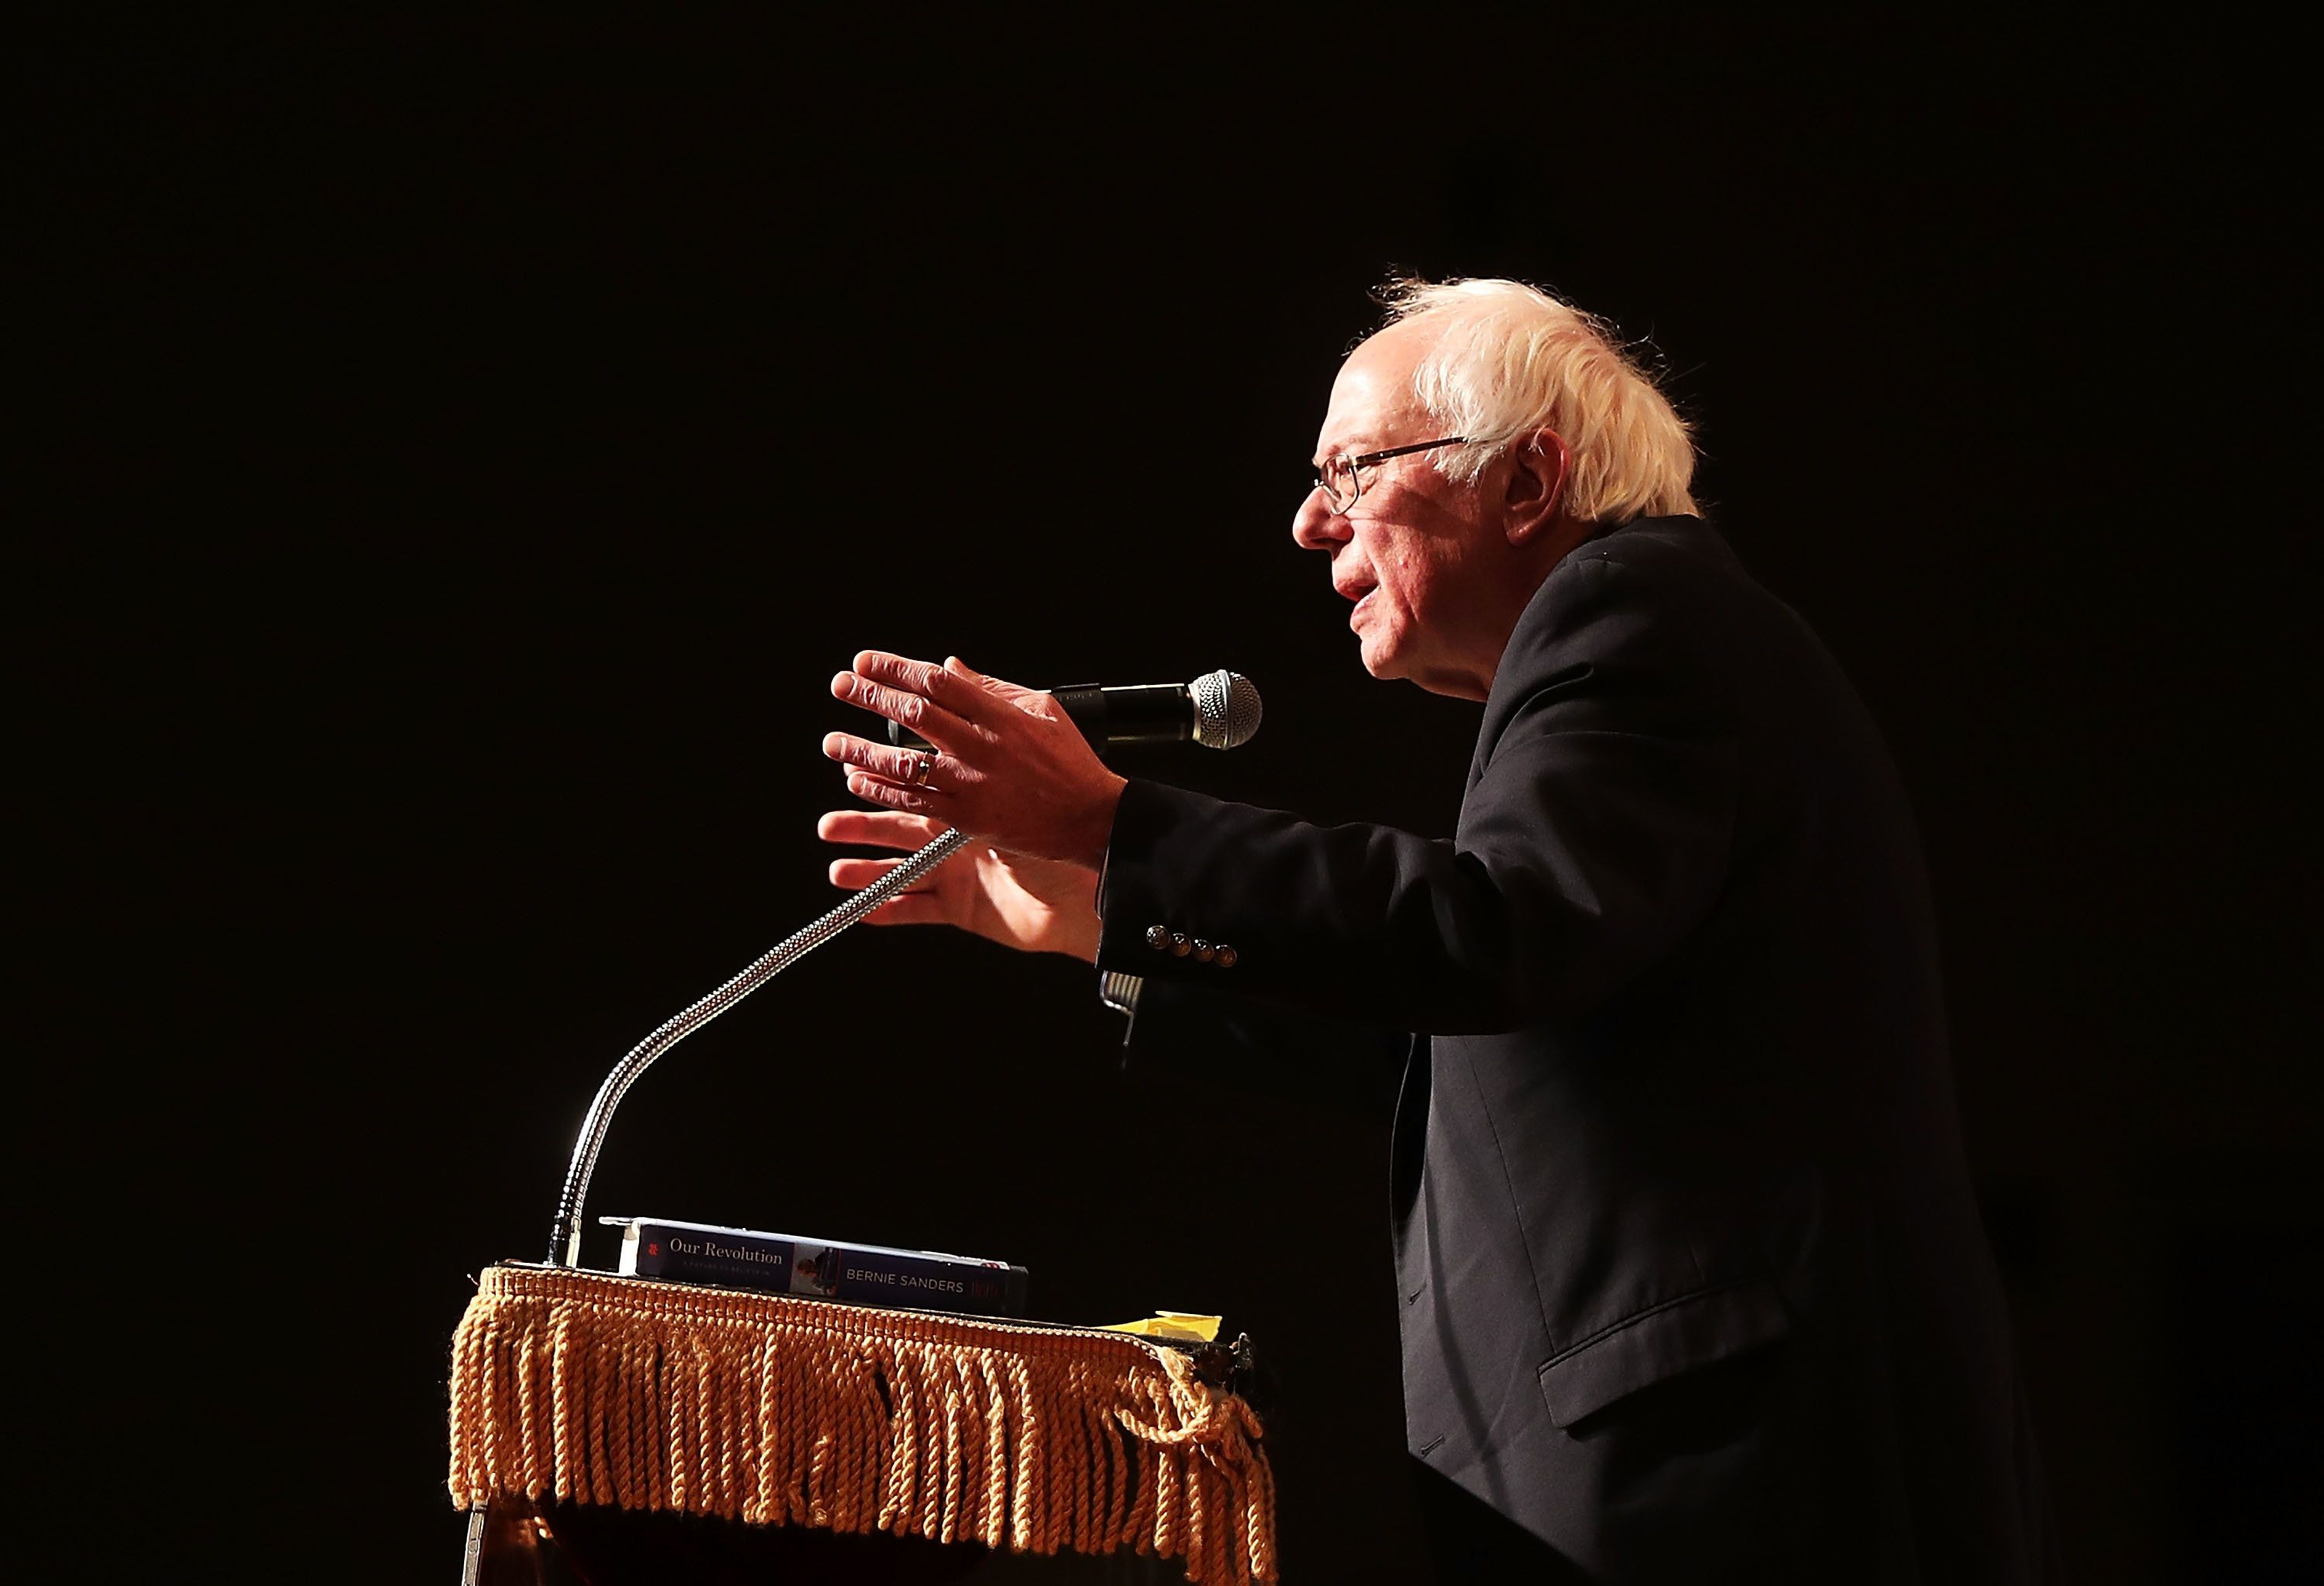 NEW YORK, NY - DECEMBER 13:  Former presidential candidate and Vermont Senator Bernie Sanders speaks about his 2016 campaign at The Cooper Union on December 13, 2016 in New York City. Sanders also spoke about Donald Trump's win in the 2016 Presidential election and his new book, Our Revolution: A Future to Believe In. (Photo by Spencer Platt/Getty Images)